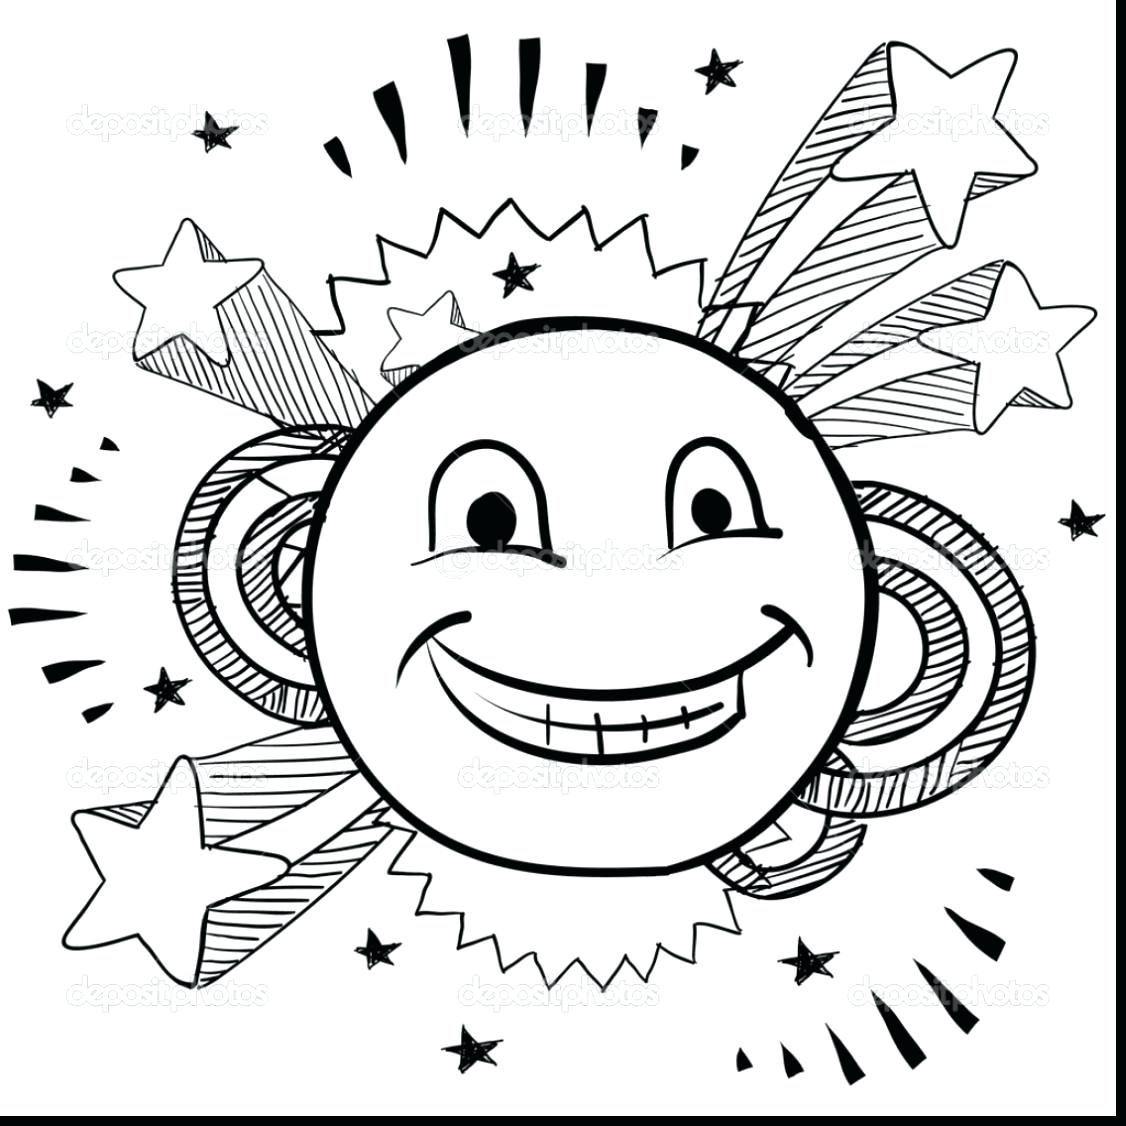 1126x1126 Hello Kitty Smiley Face Coloring Pages How To Draw At Page